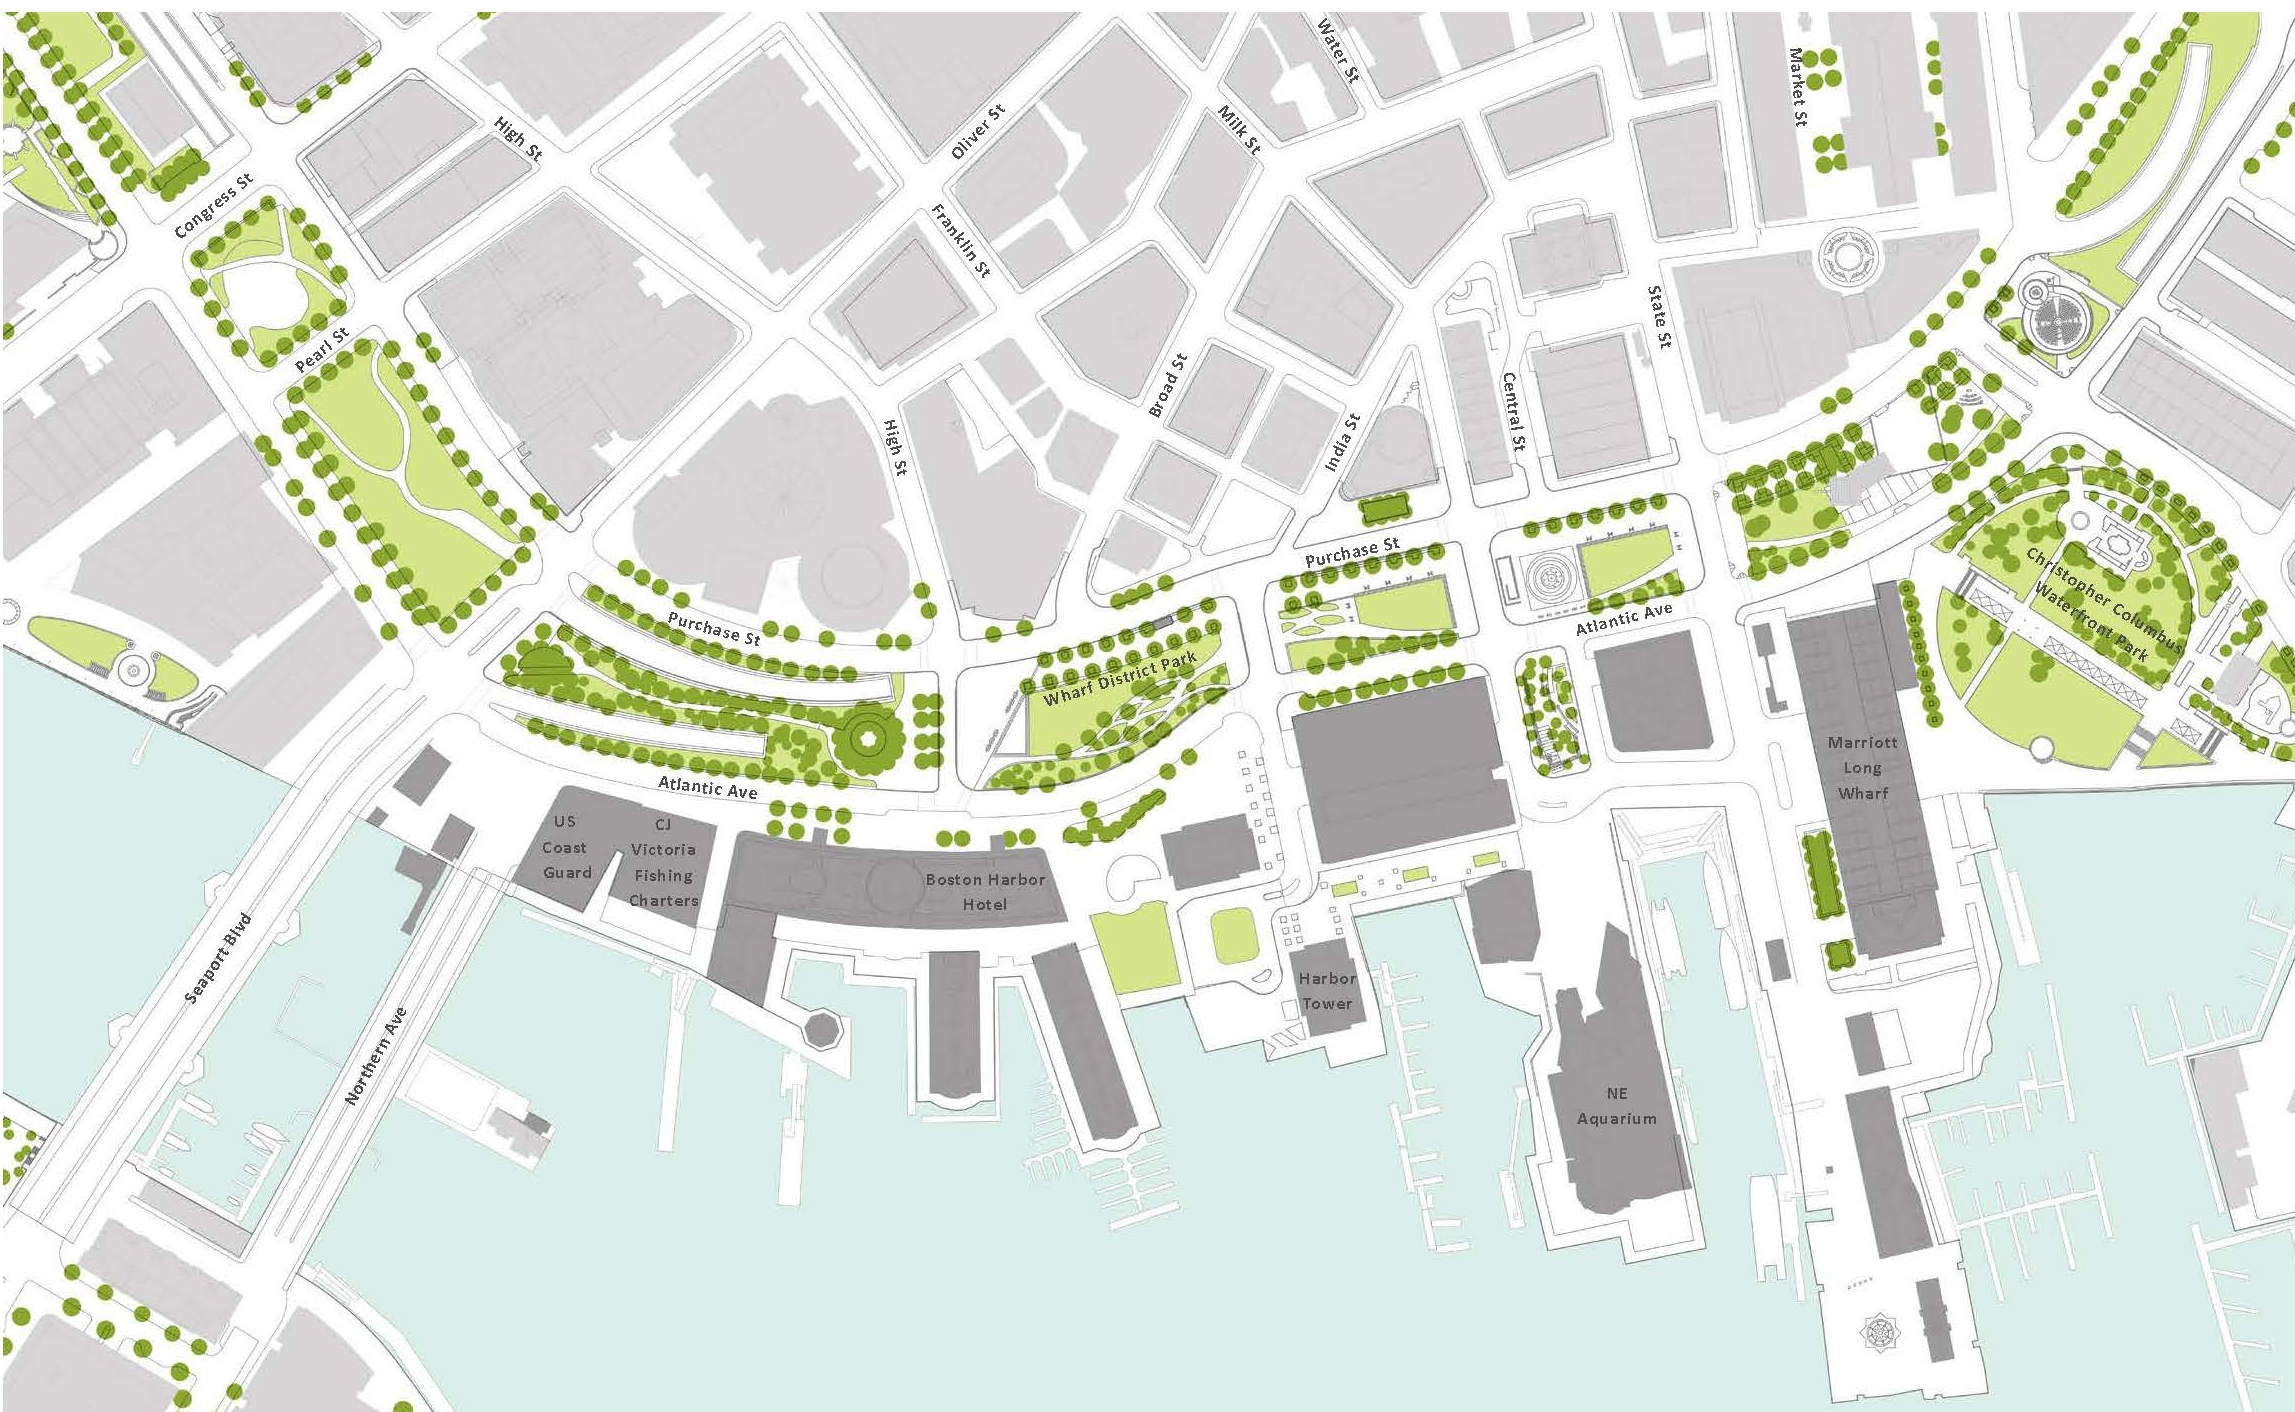 16.09.27 WD Public Realm Vision Draft_Page_17.jpg